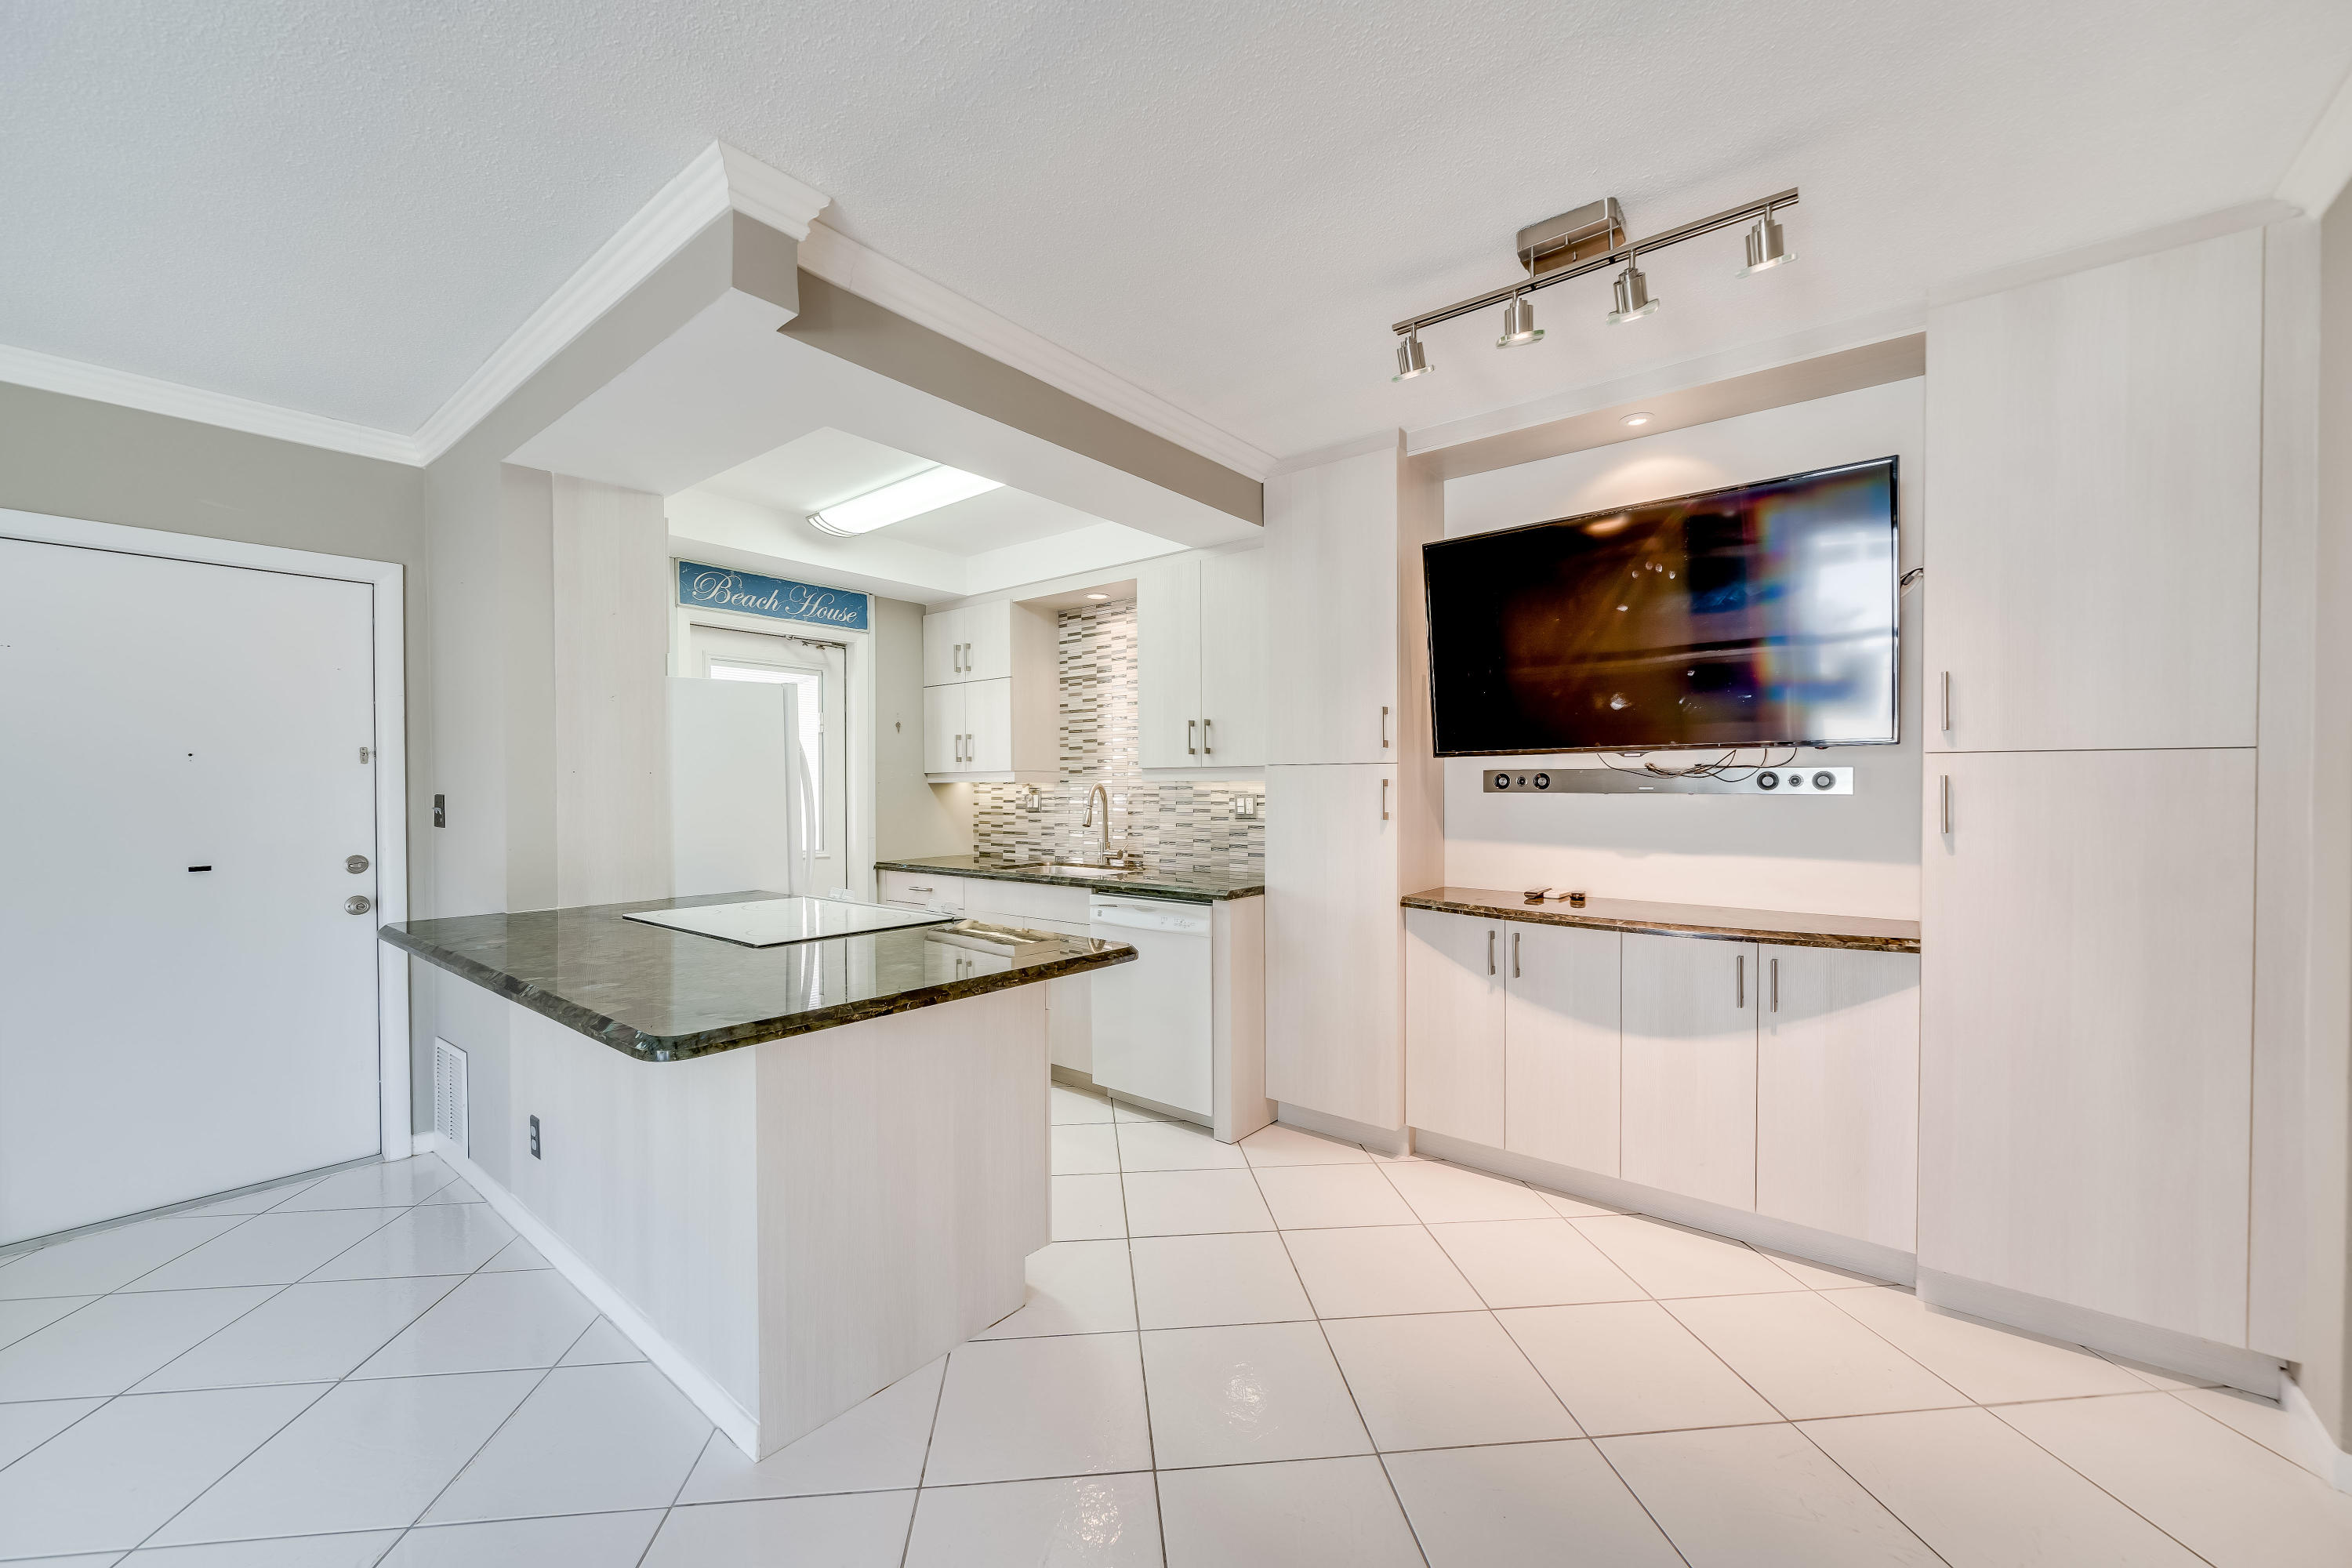 234 Hibiscus Unit 174, Lauderdale By The Sea, Florida 33308